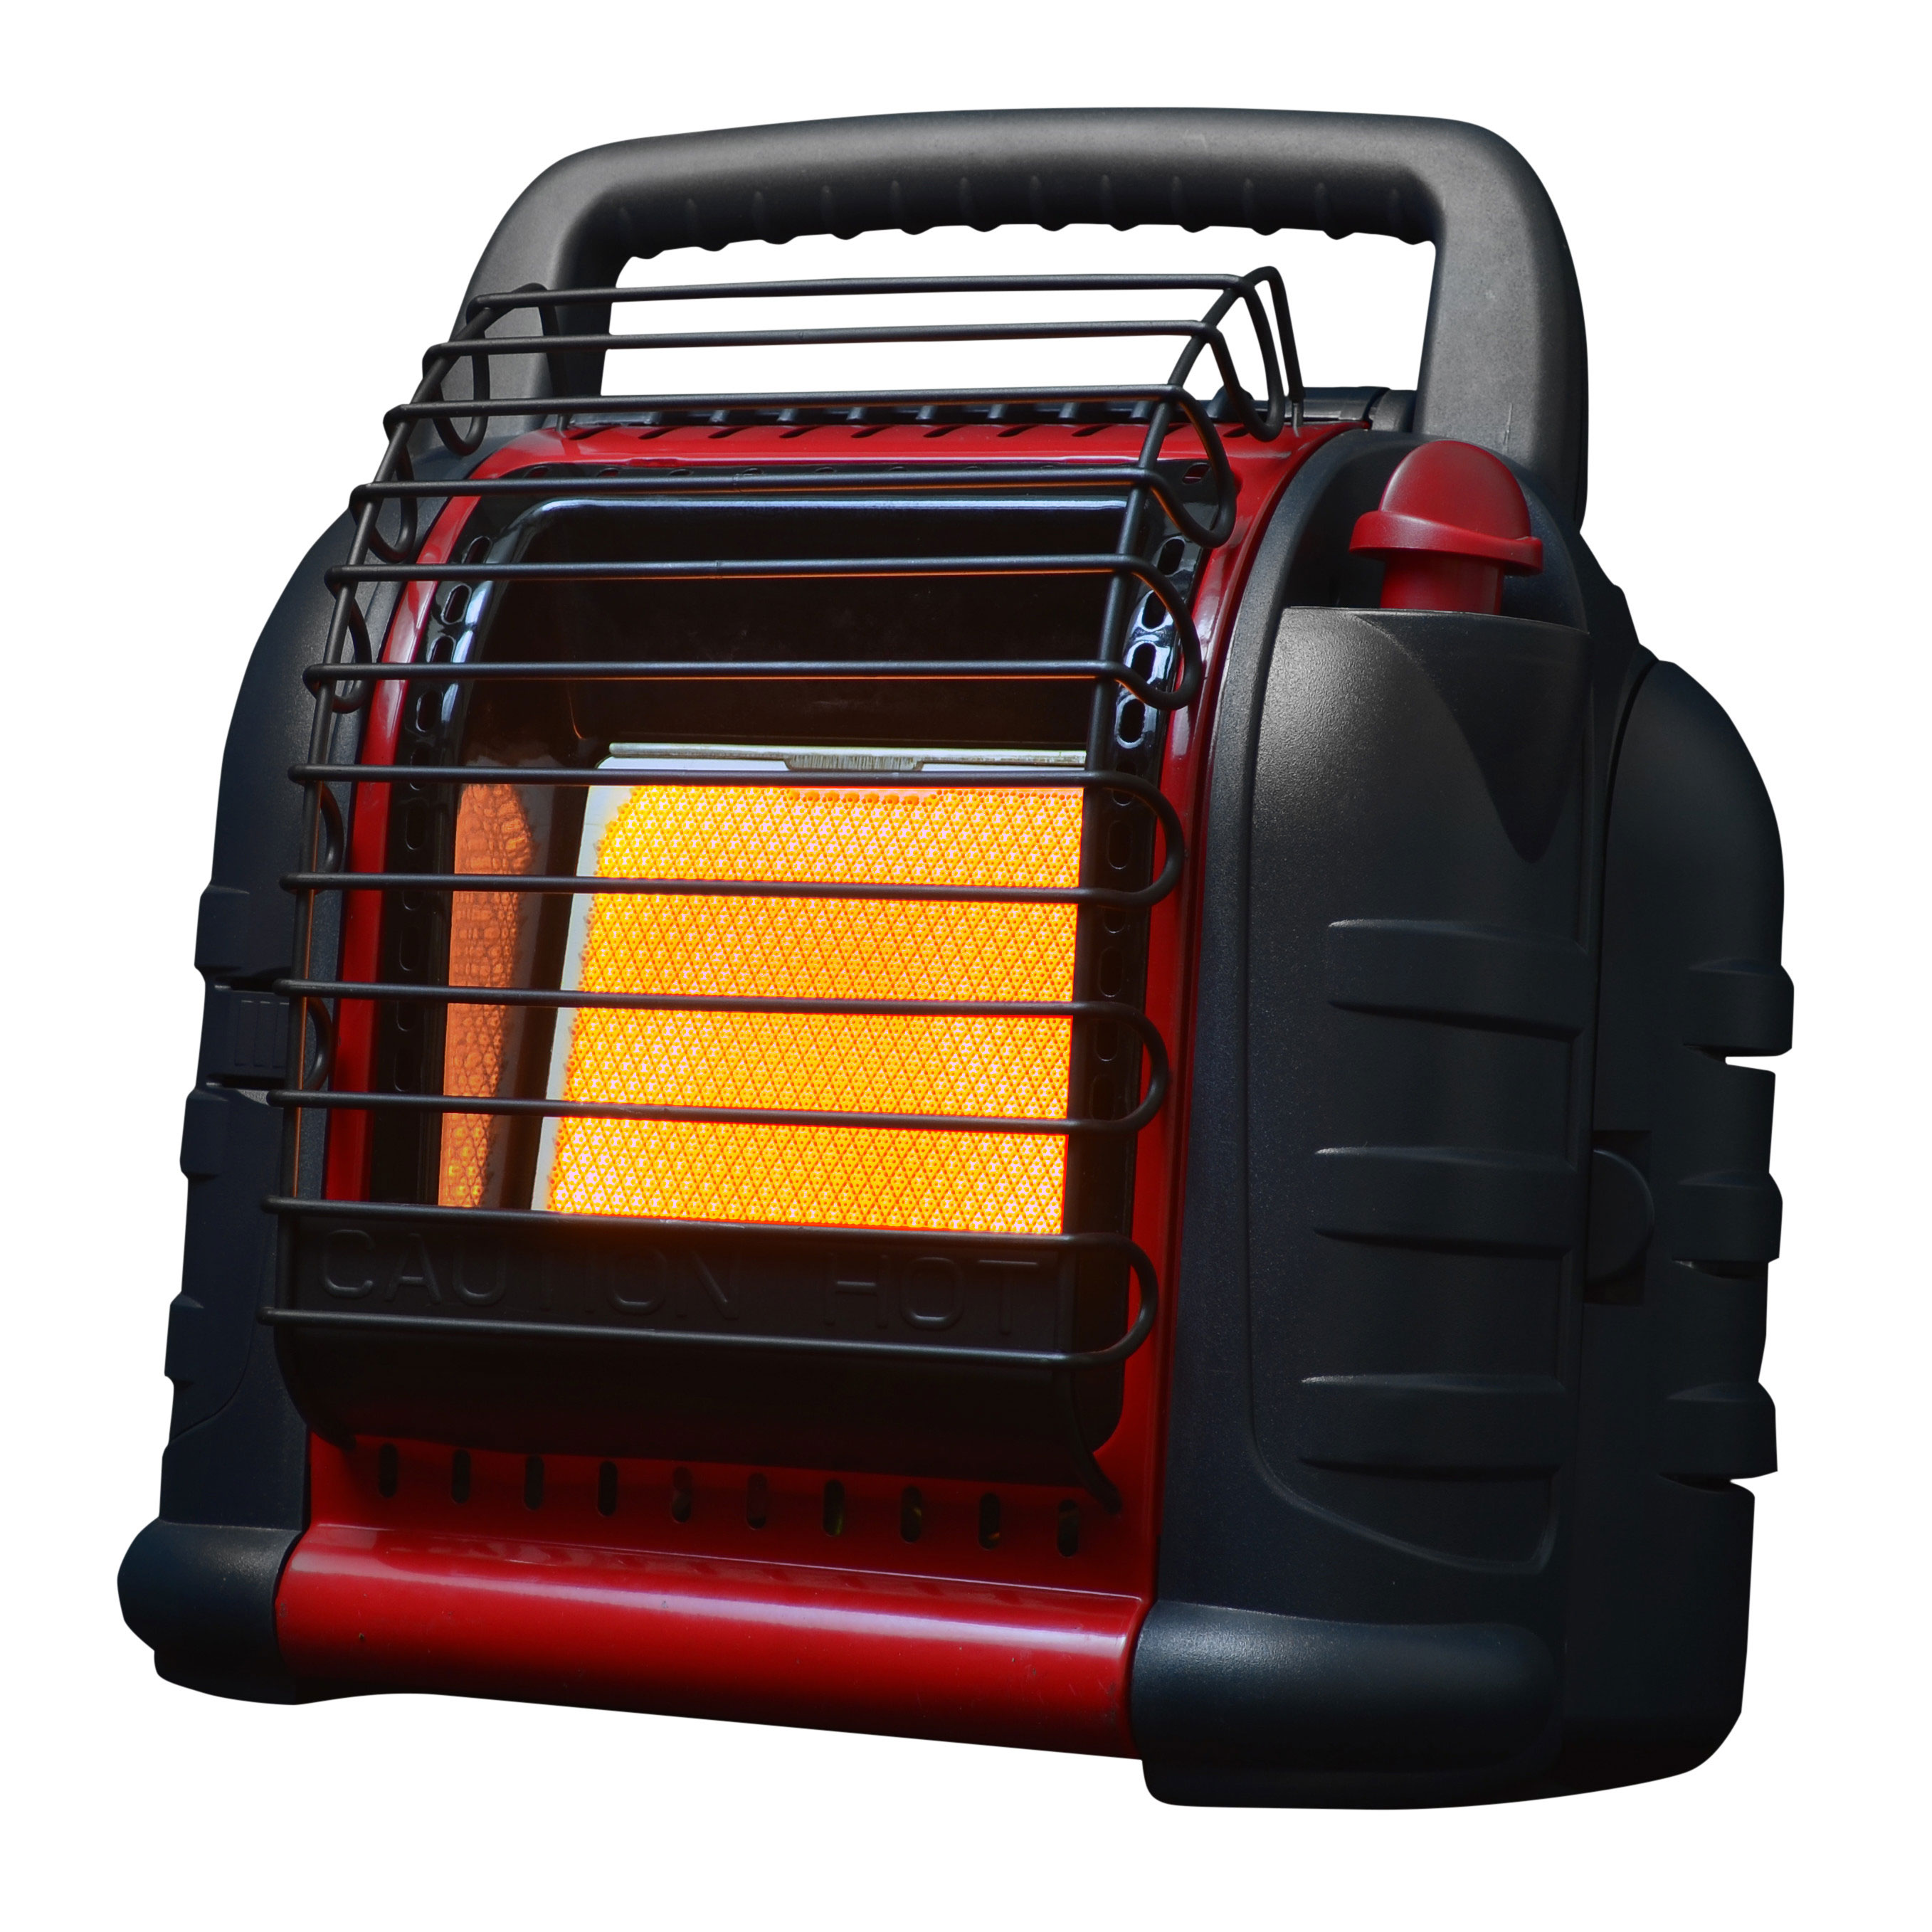 Mr Heater MH12B 12000 BTU Red Hunting Buddy Portable Propane Gas Heater with Fan